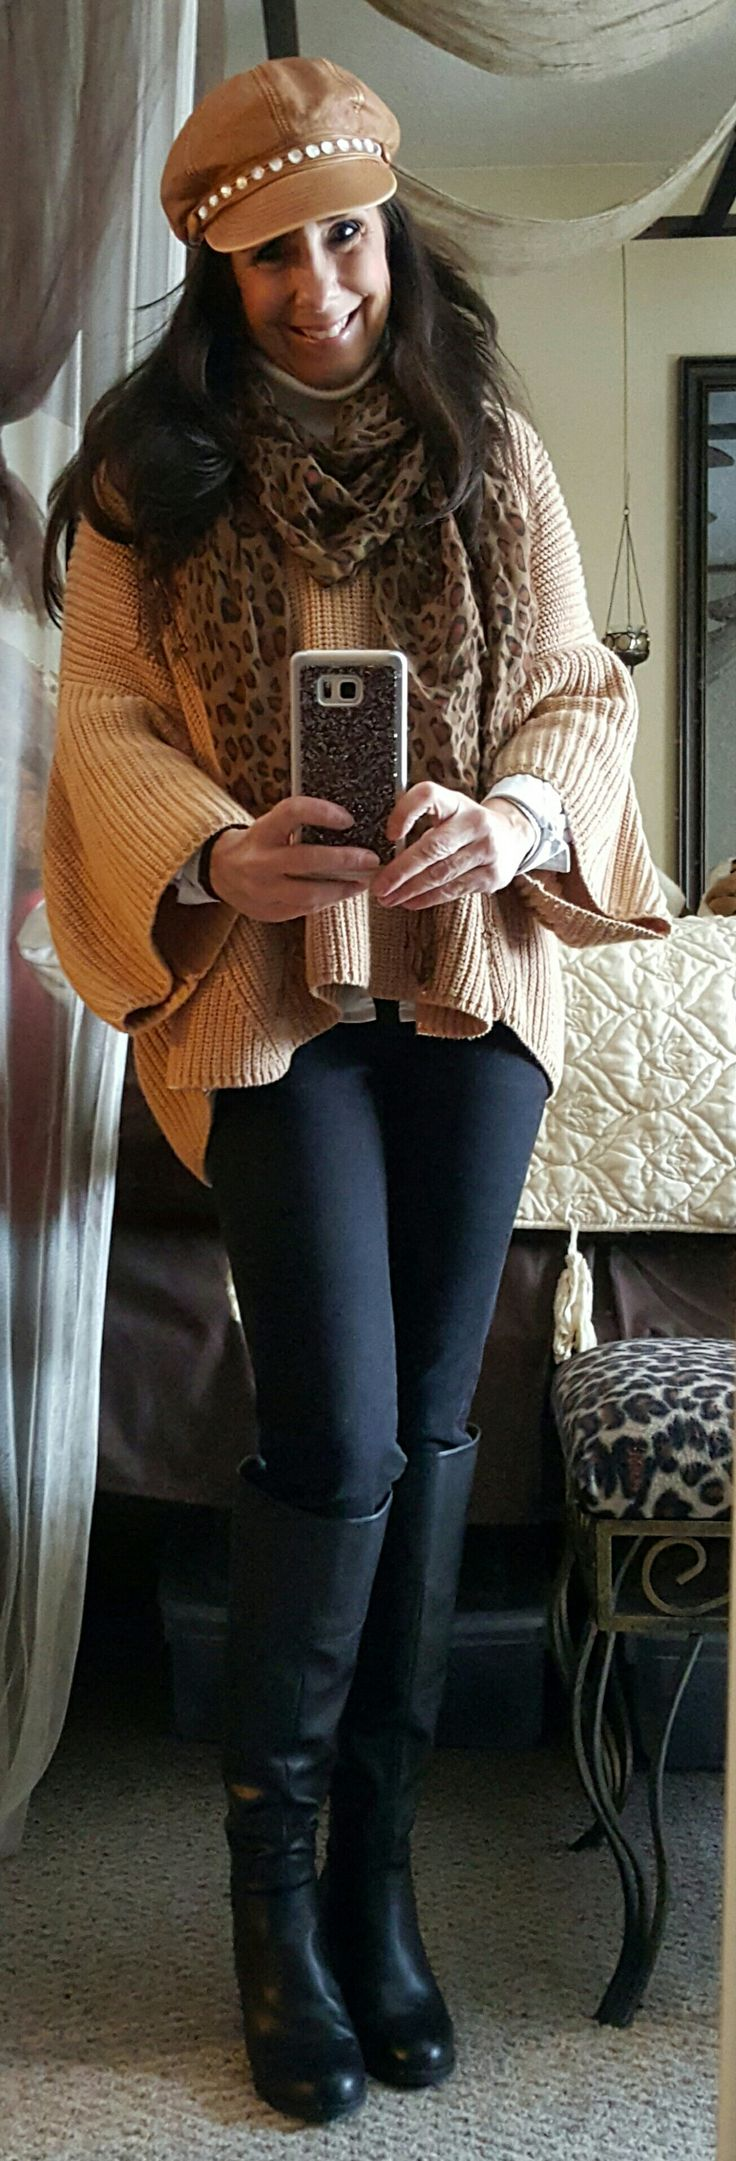 Black jeans tan sweater  boots  hat